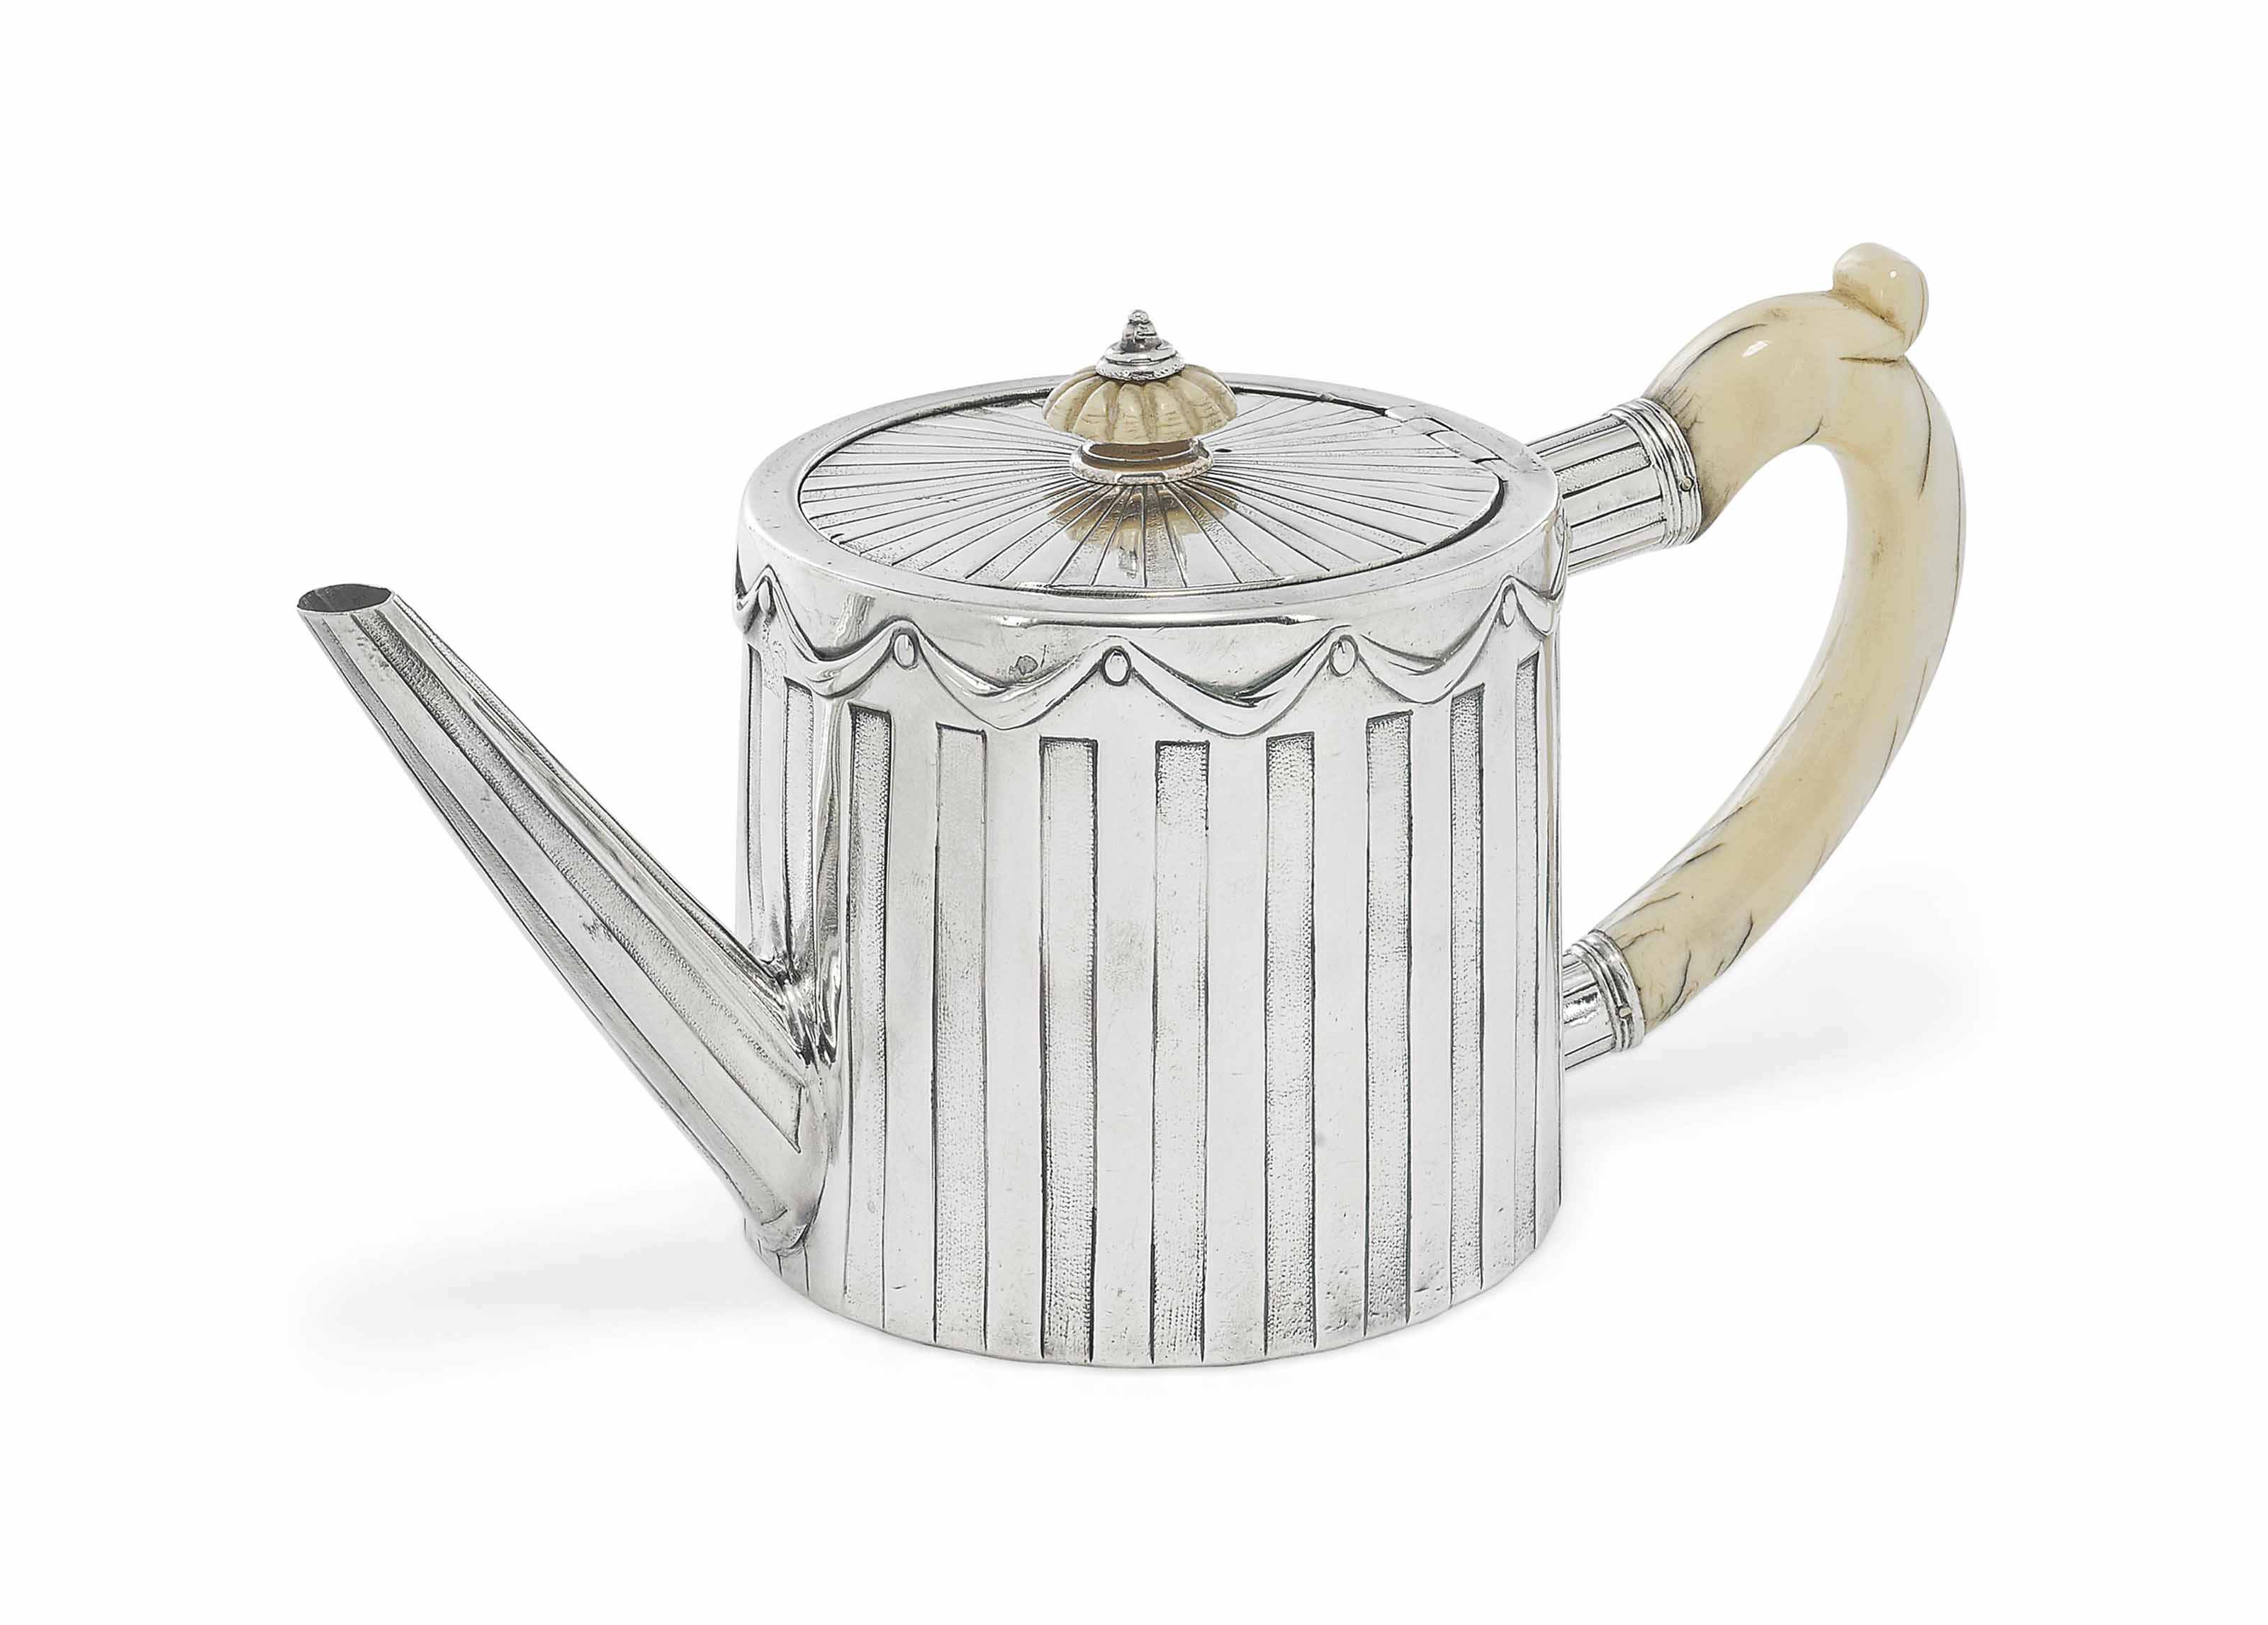 A GEORGE III SILVER DRUM TEAPO